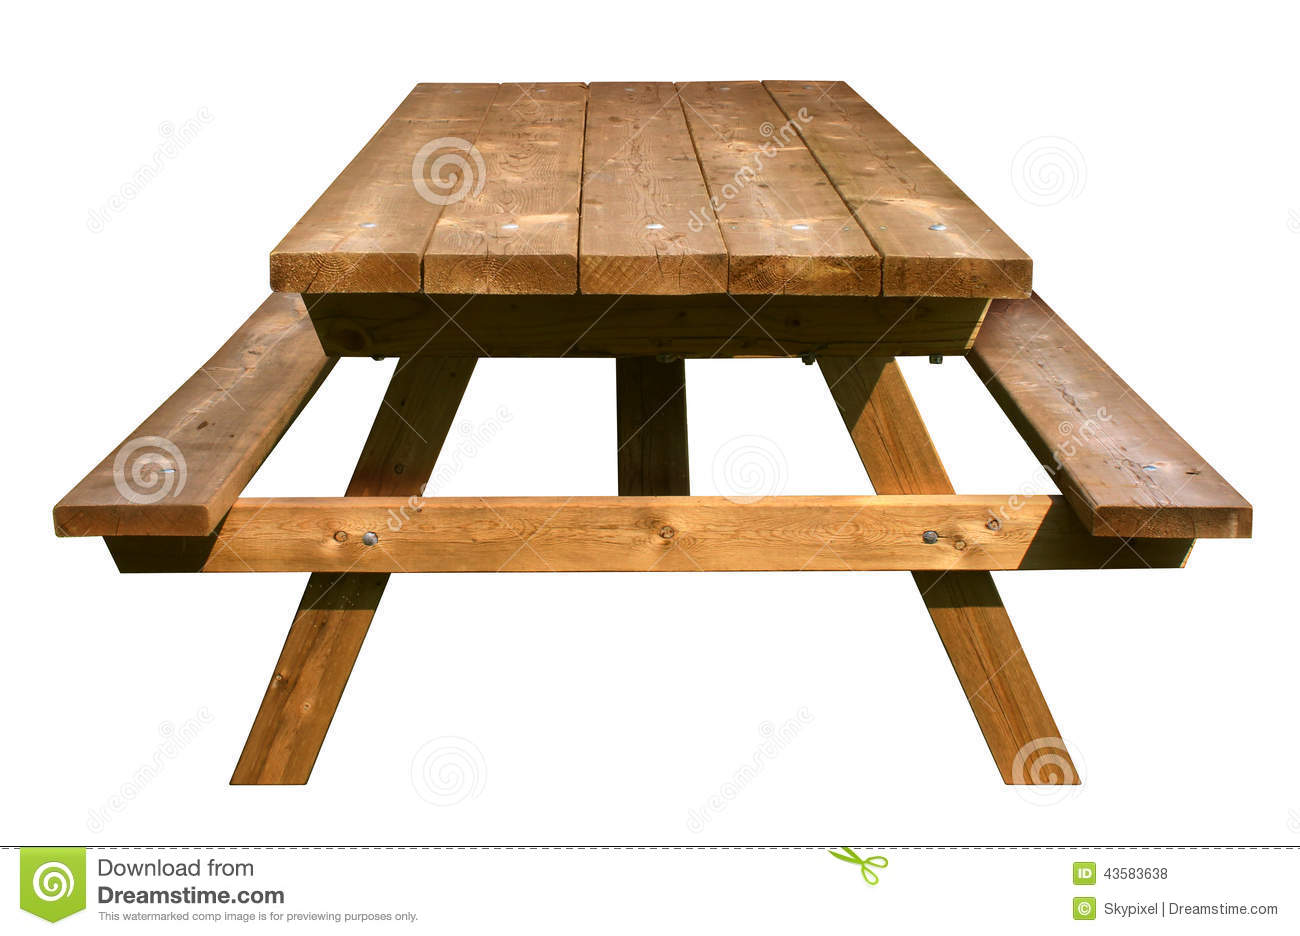 Picnic Table Front View Stock Photo - Image: 43583638